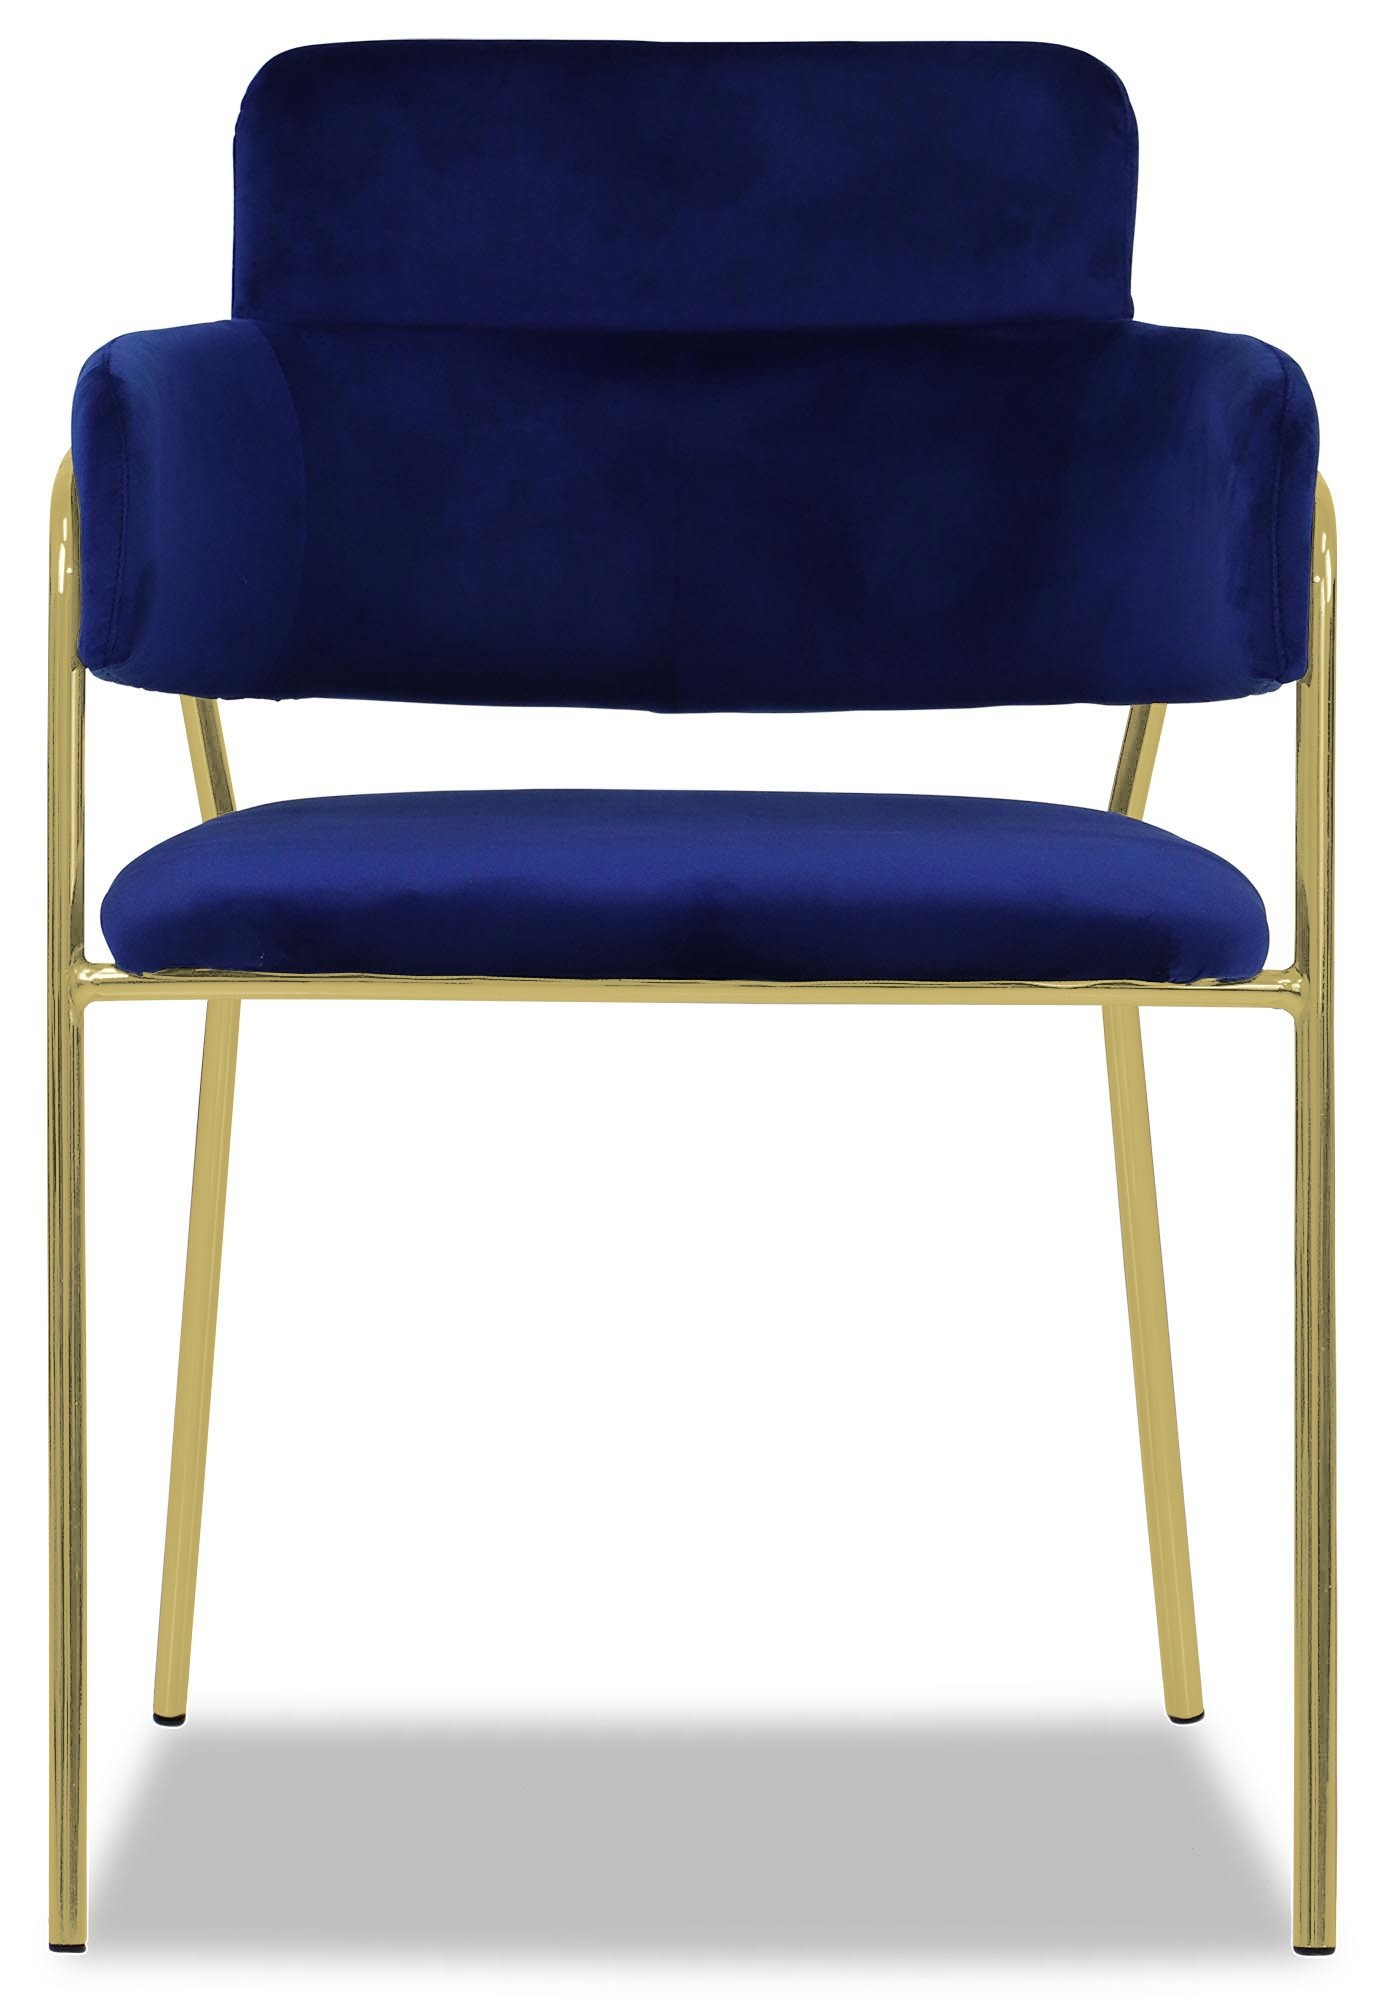 Royal Blue Chair Emmiel Chair With Gold Legs In Royal Blue